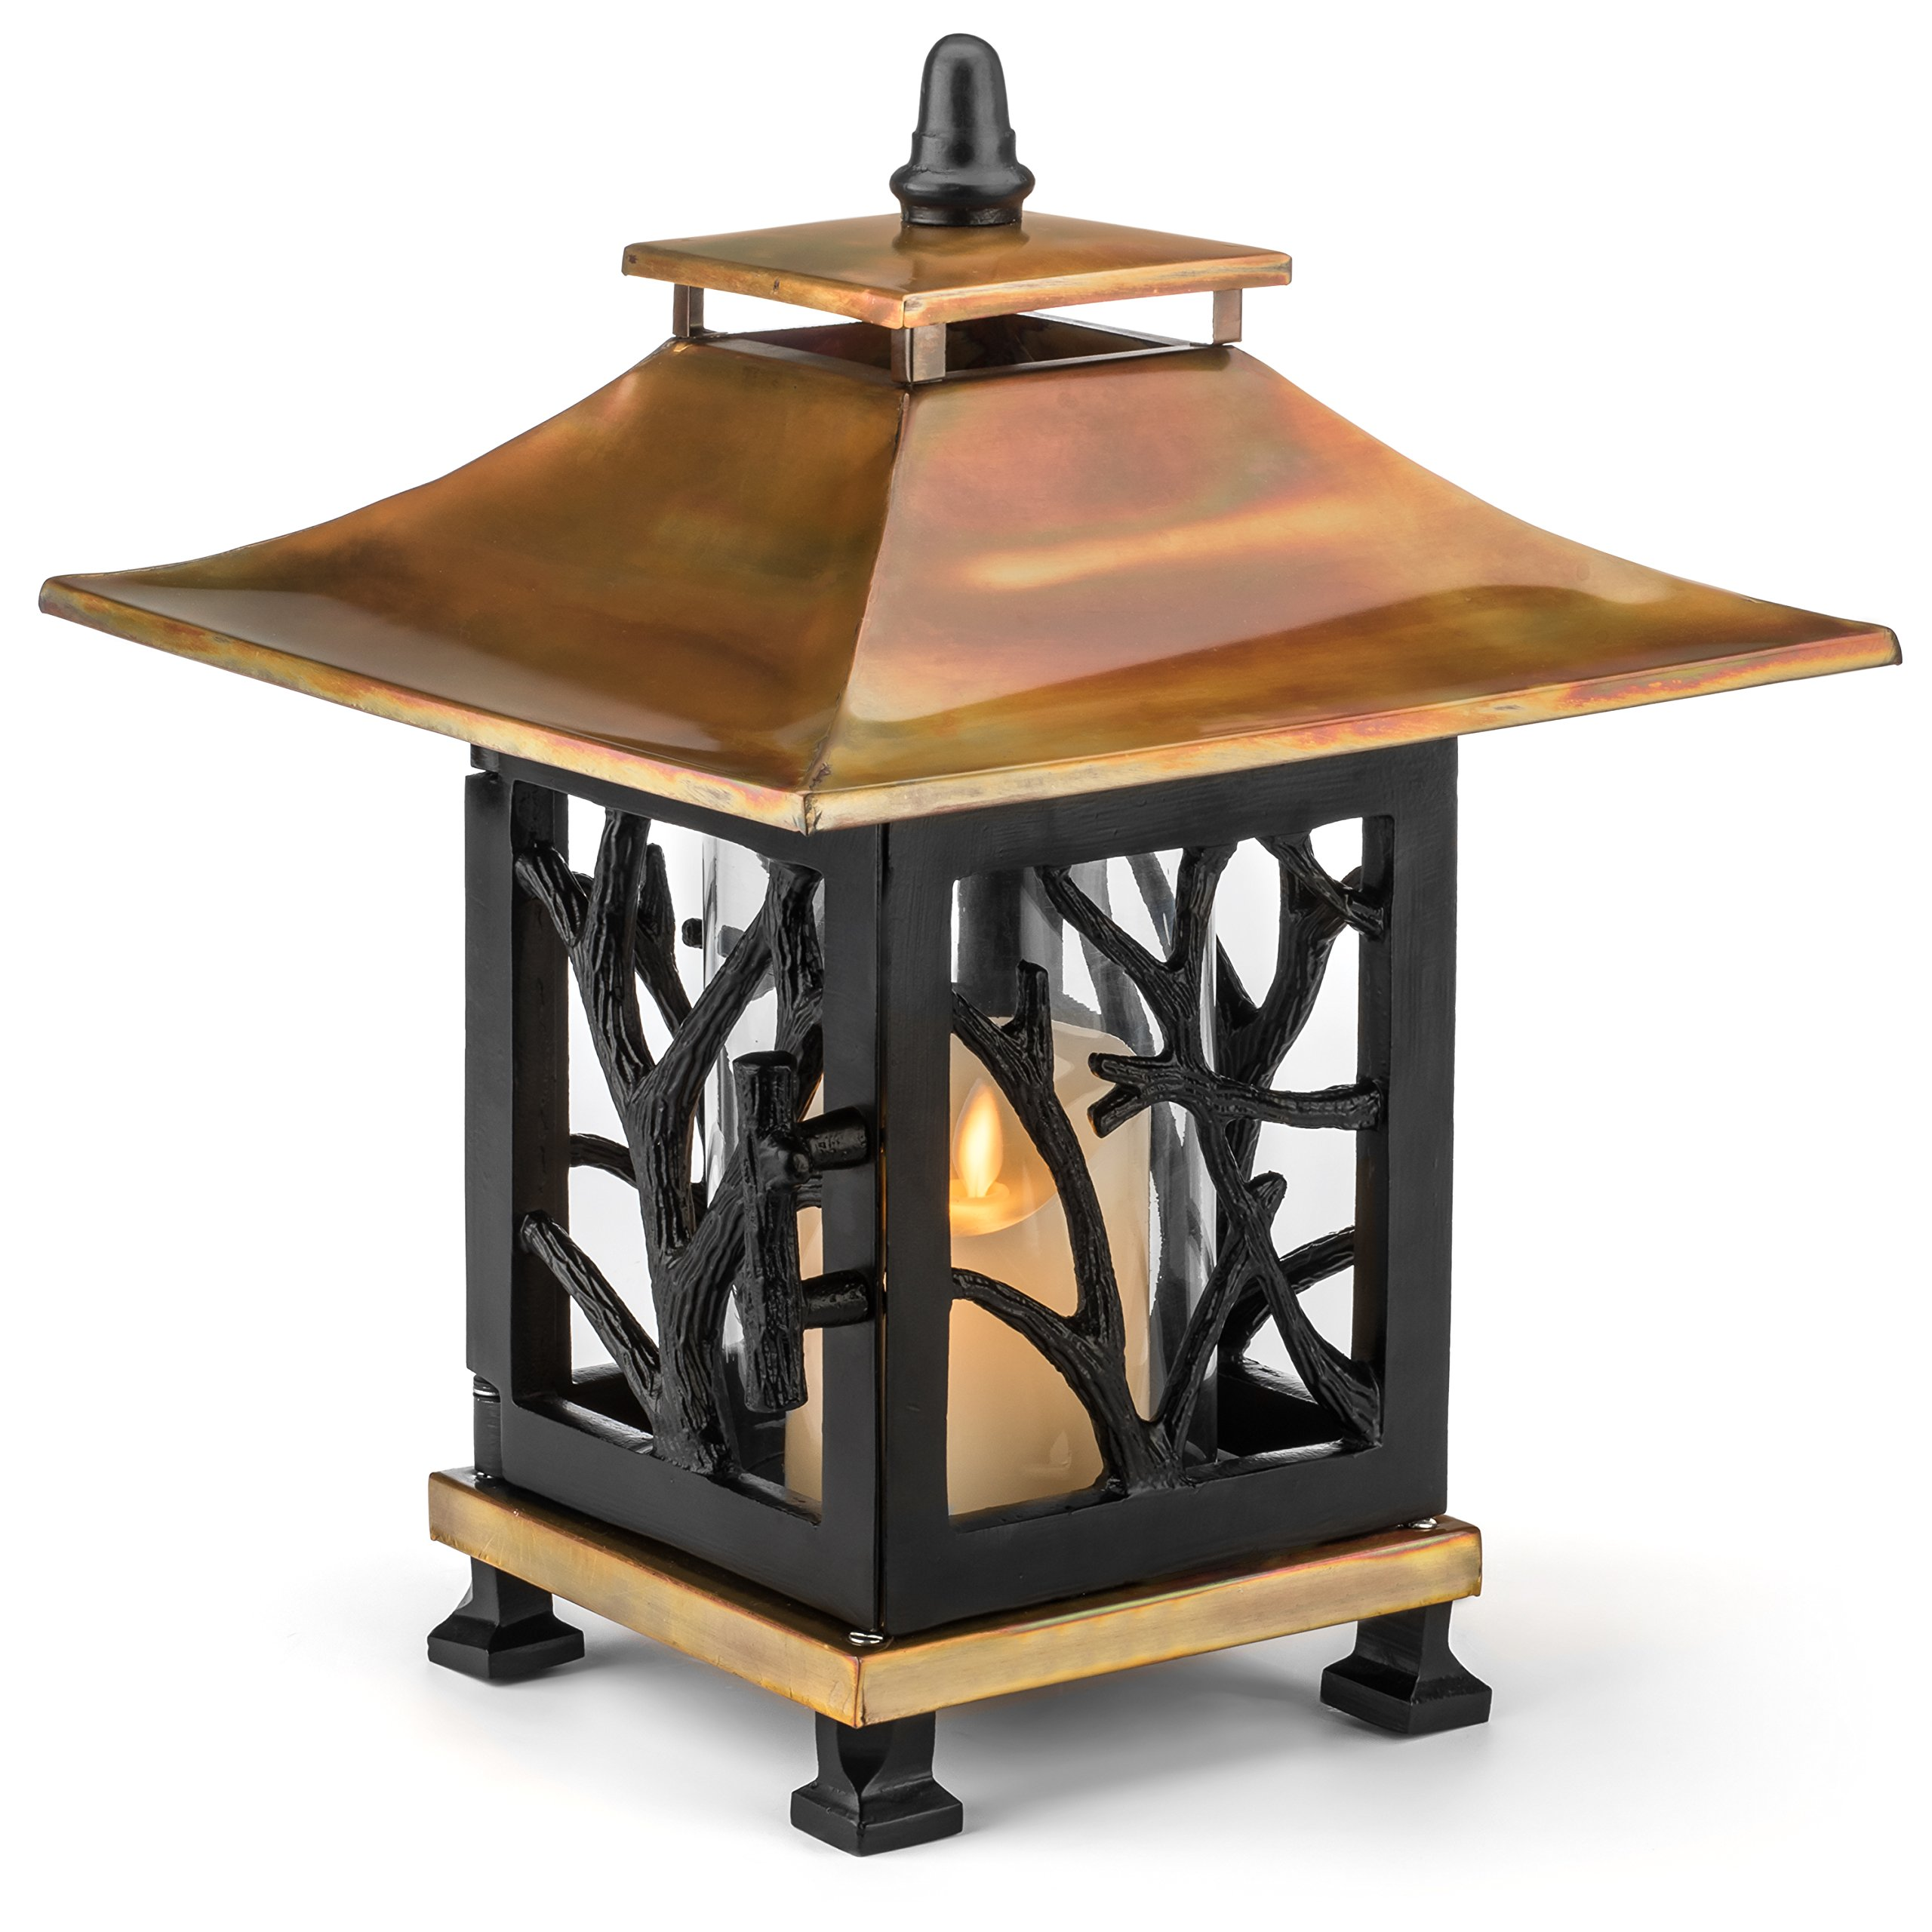 H Potter Decorative Candle Lantern Outdoor Indoor for Patio Deck Balcony Terrace Tabletop by H Potter (Image #1)